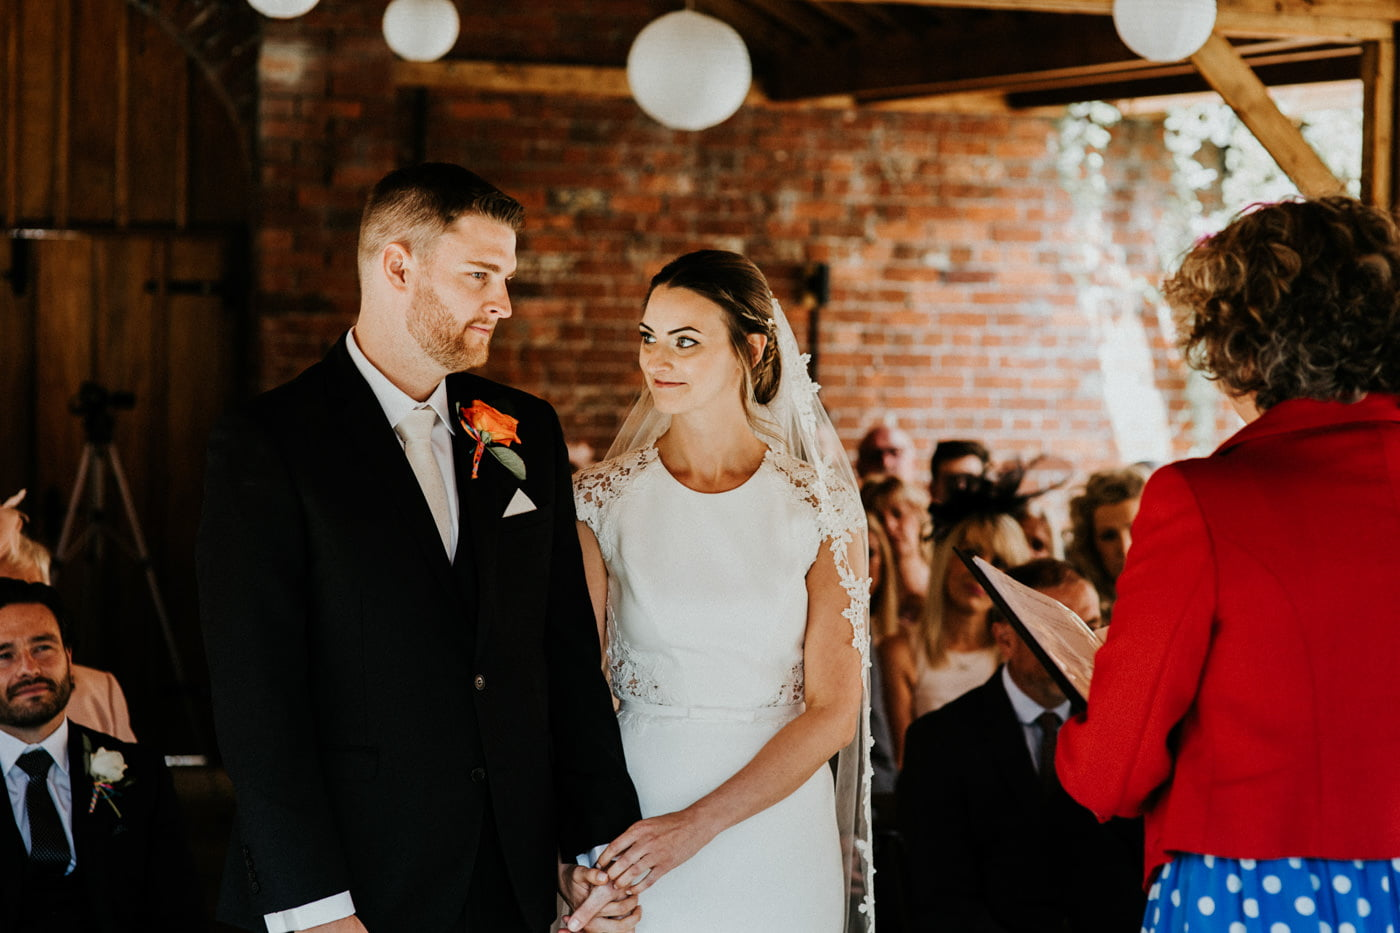 Katy and Adam, Elmhay Park, Somerset 28